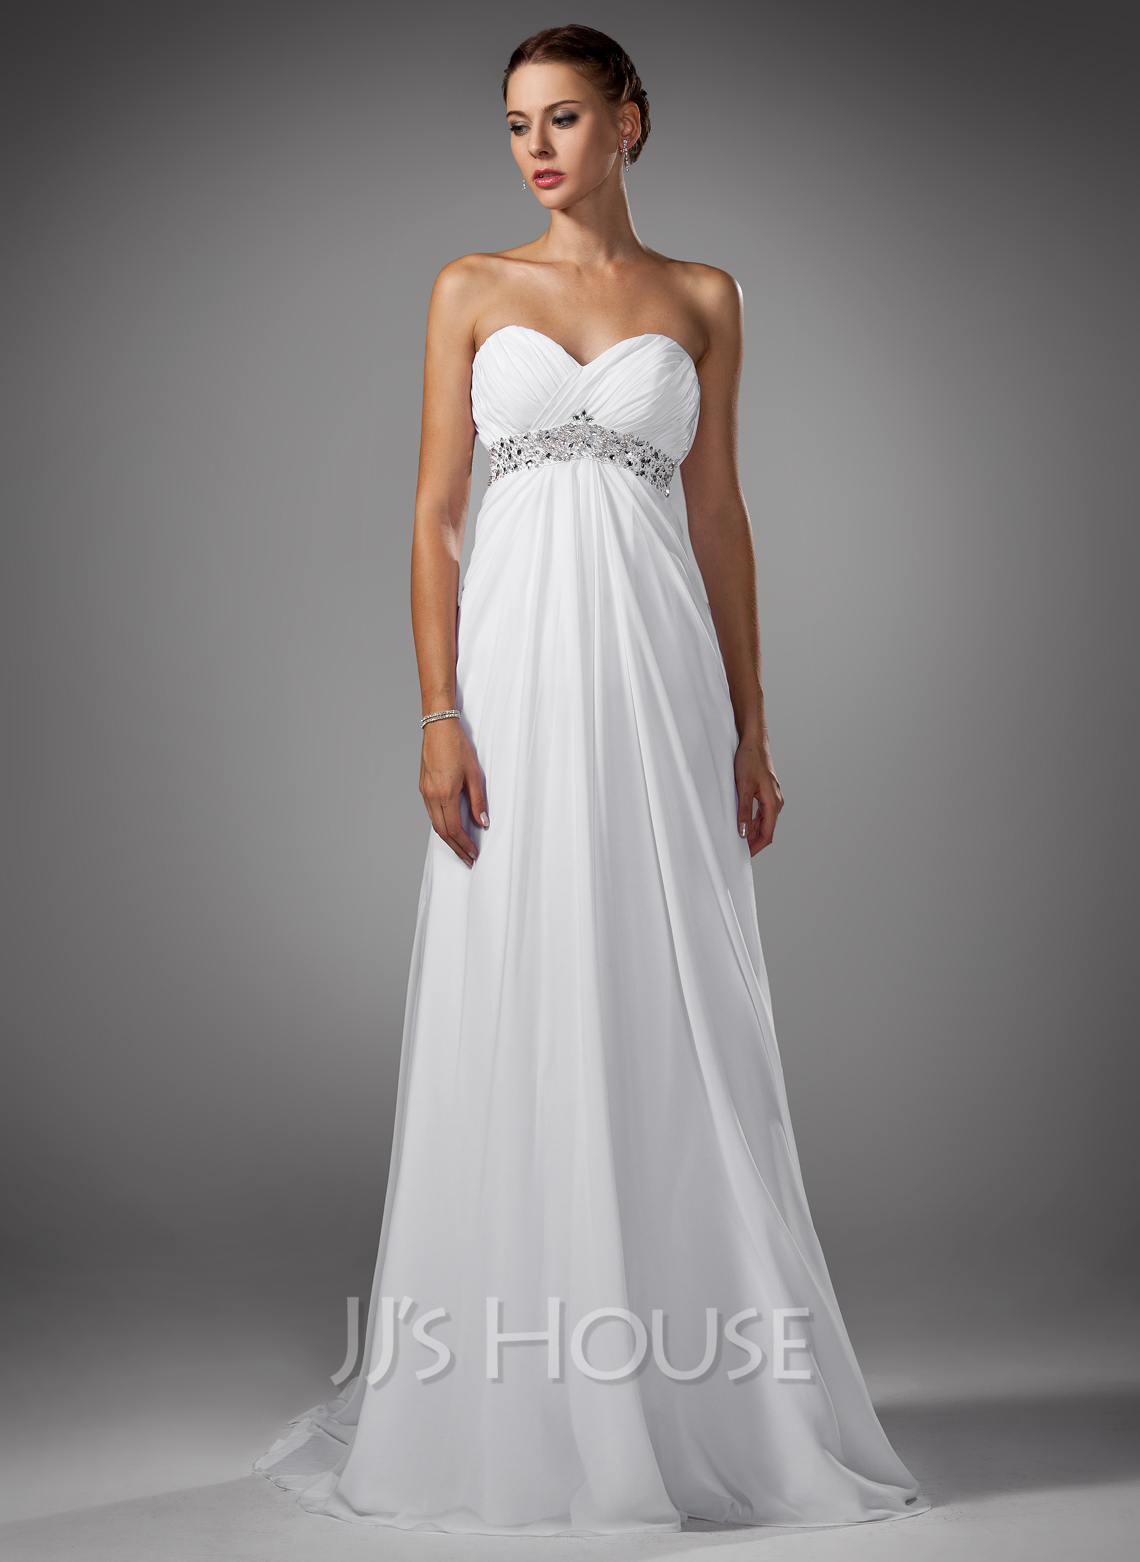 Cheap Maternity Wedding Dresses Under 100 - Mother Of The Bride ...